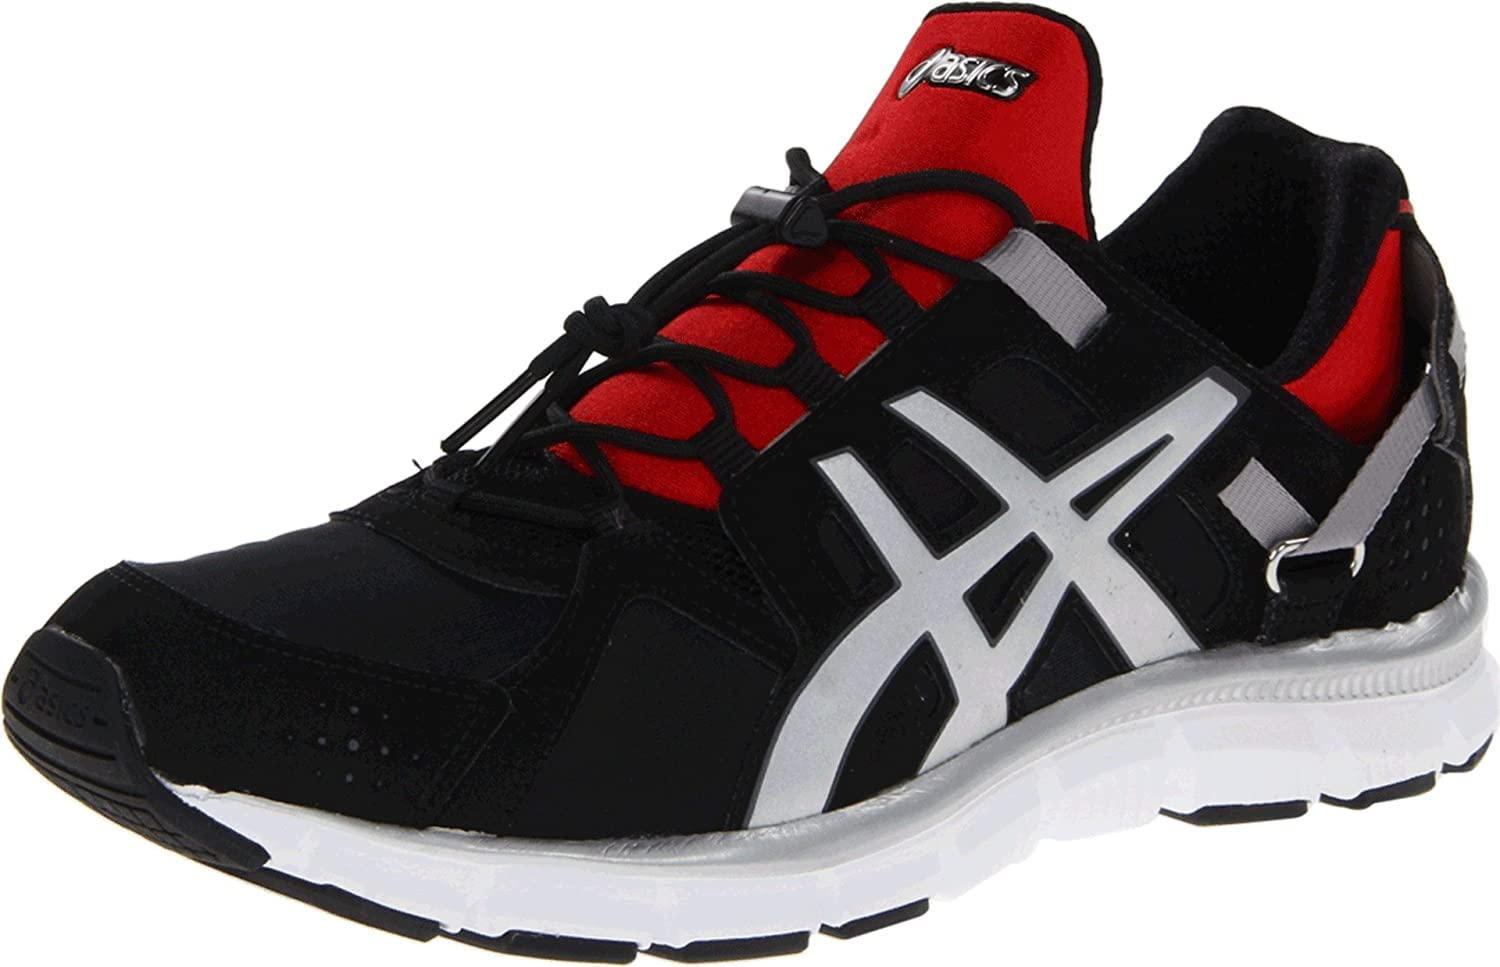 ASICS Men's Gel-Synthesis Cross-Training shoes